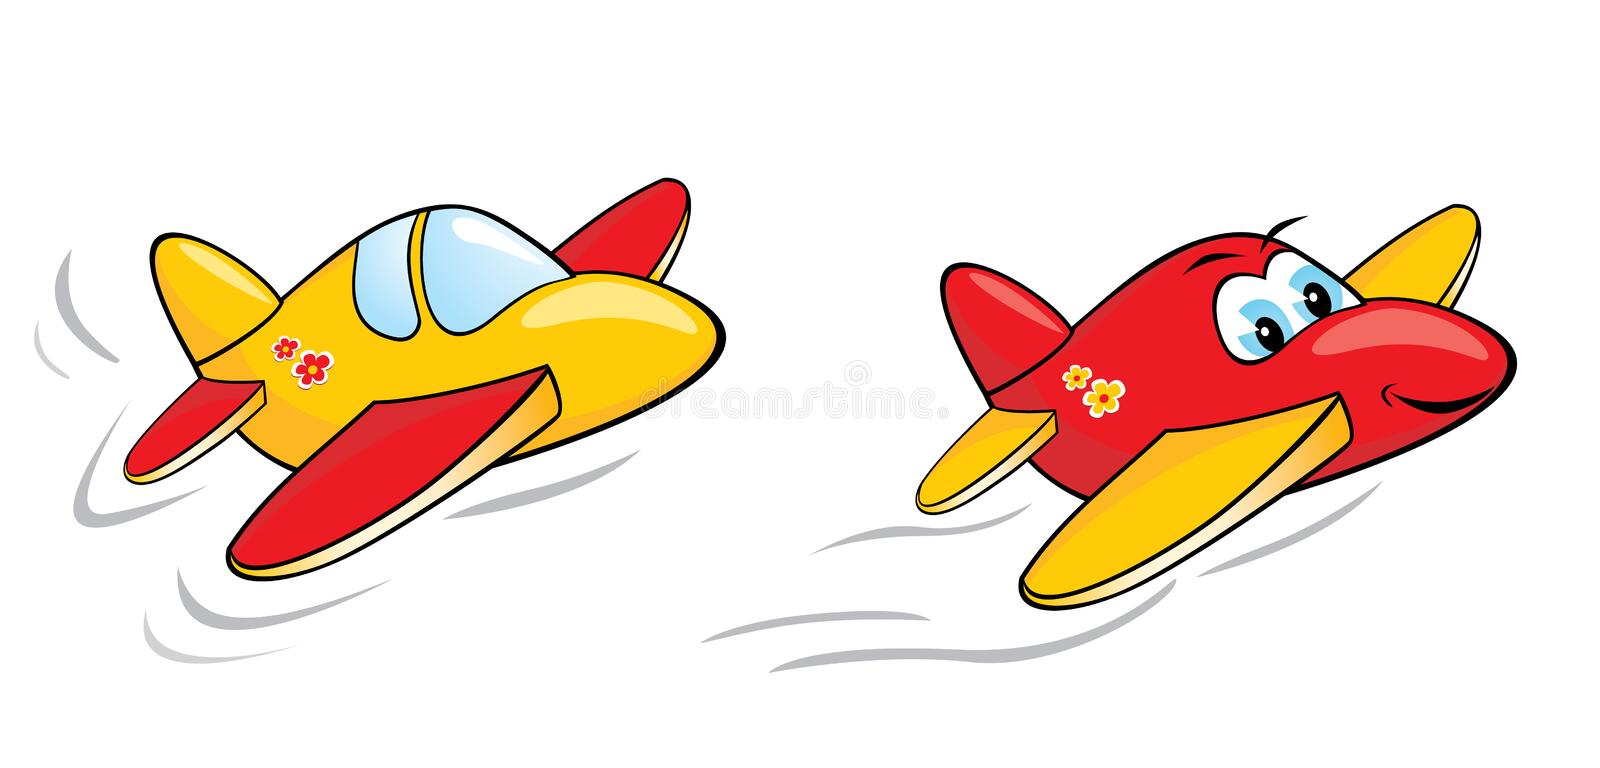 Cartoon Airplanes stock illustration